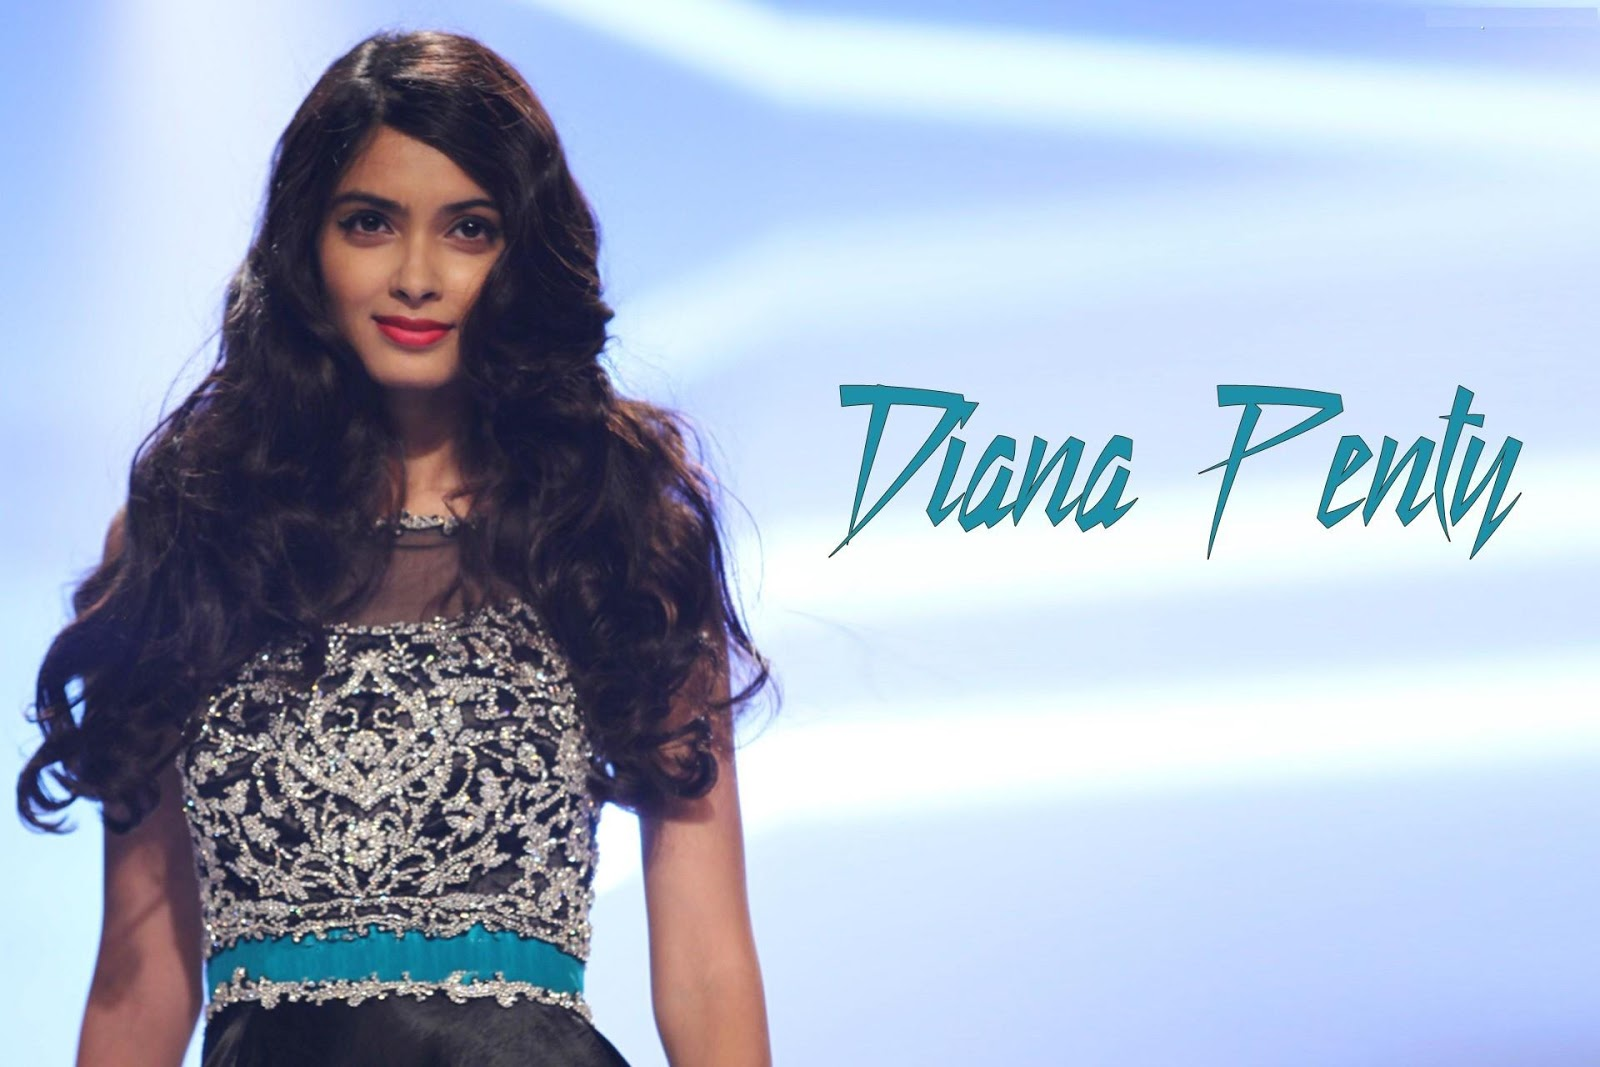 diana penty hd wallpapers | photos - hd images 1080p